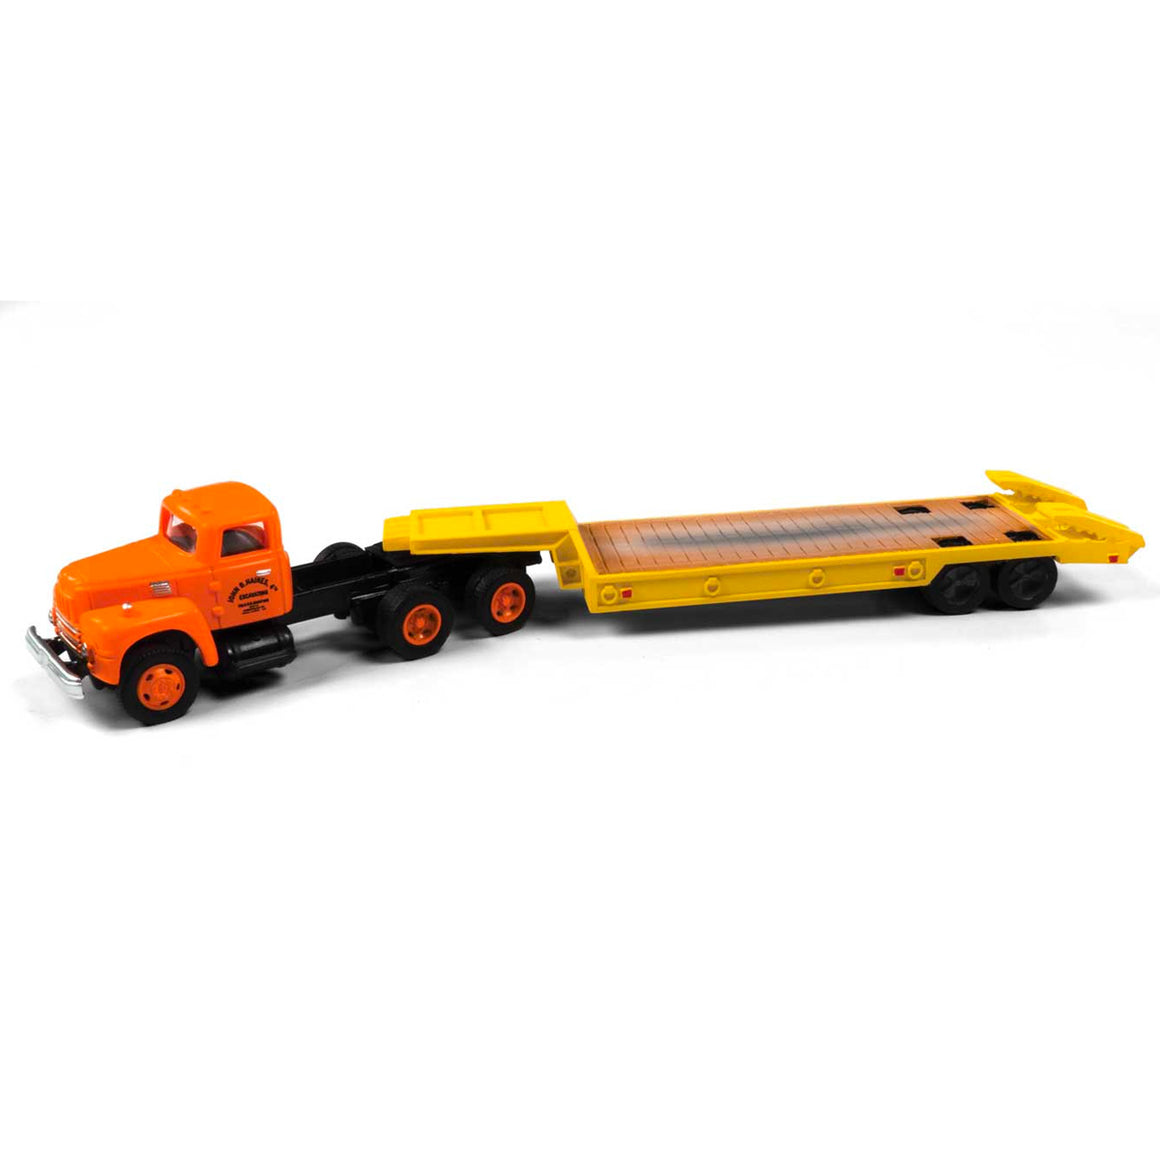 HO Scale: 1954 International-Harvester R-190 w/ Lowboy Trailer - Haines Excavating